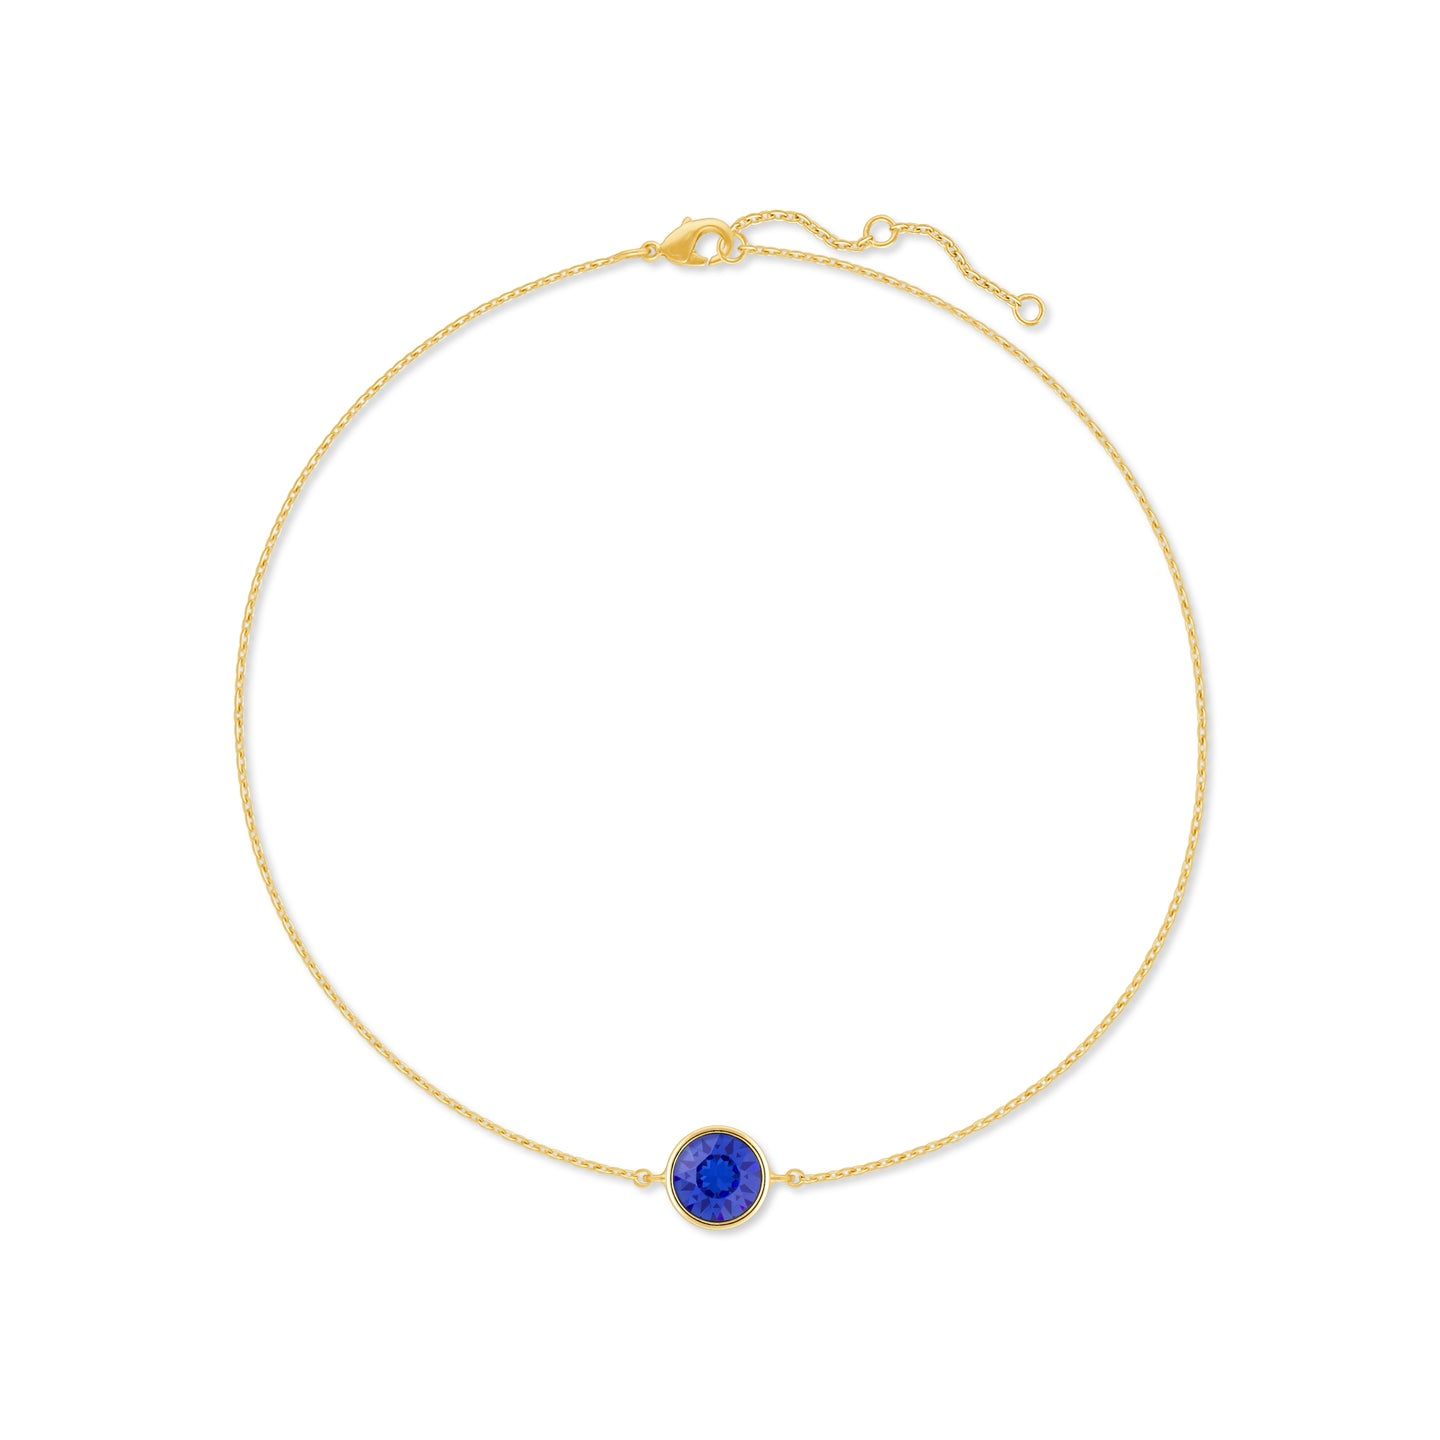 Harley Chain Bracelet with Blue Sapphire Round Crystals from Swarovski Gold Plated - Ed Heart